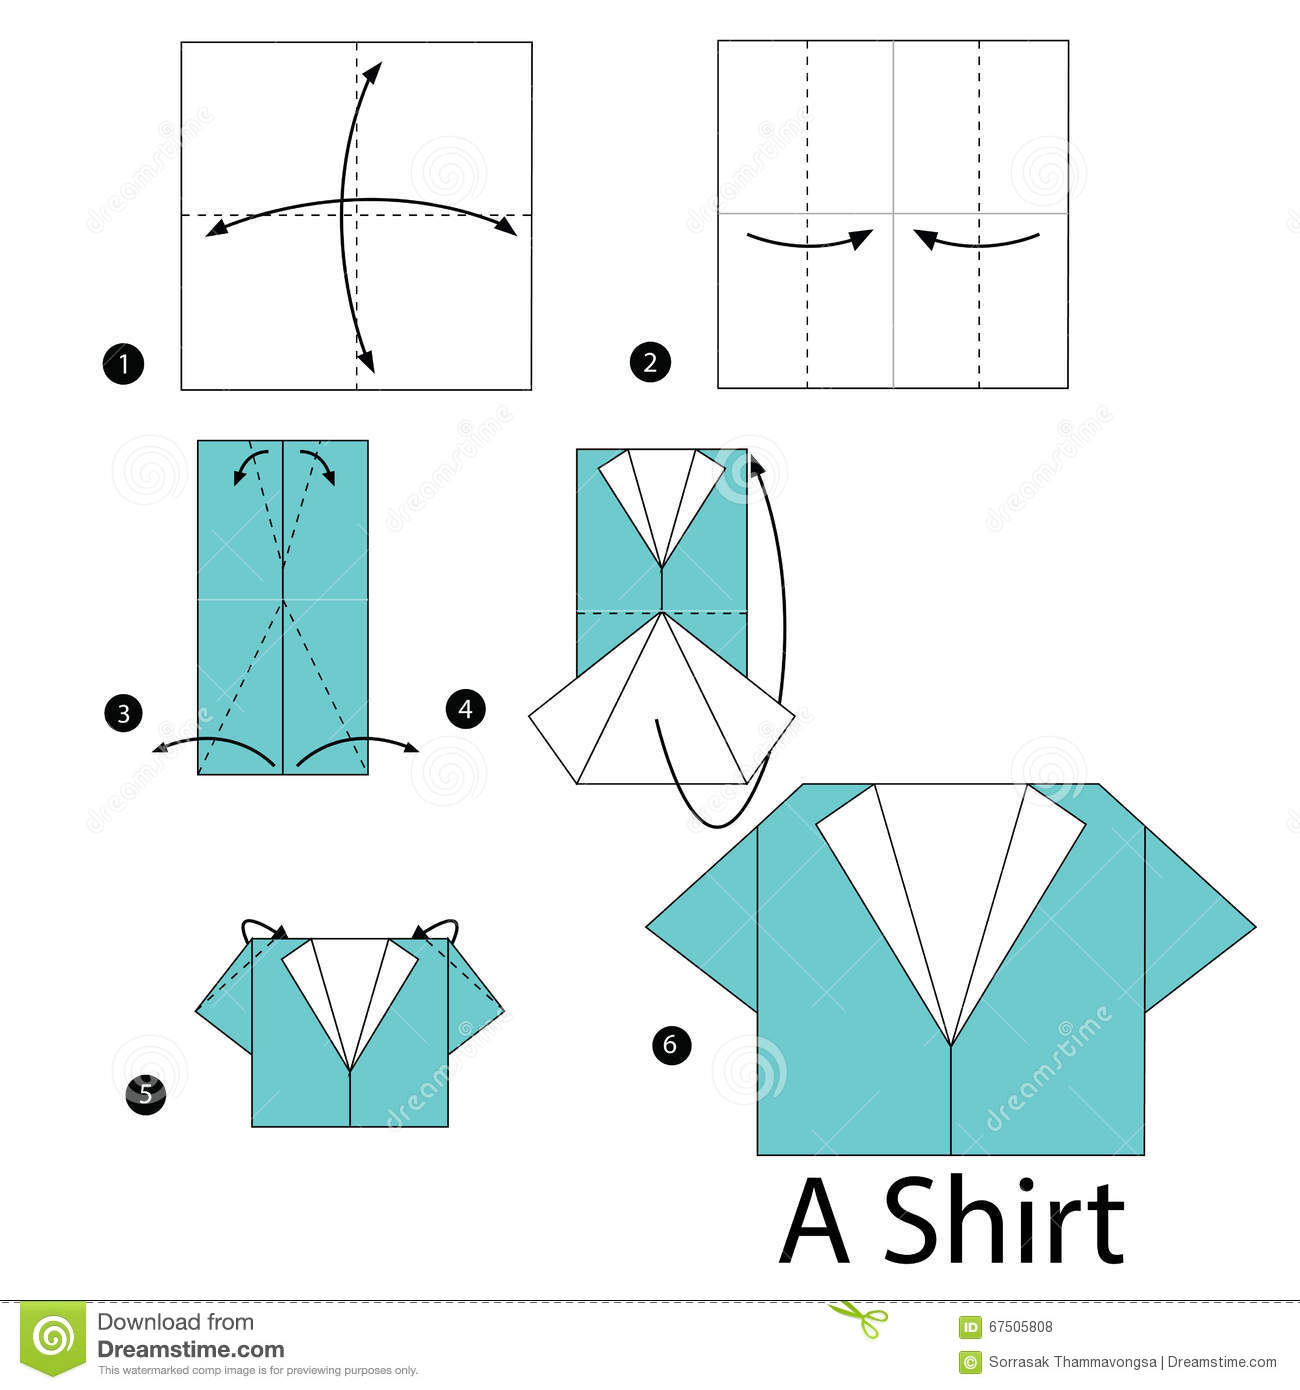 EASY ORIGAMI SHIRT FATHER'S DAY CARD | 1390x1300